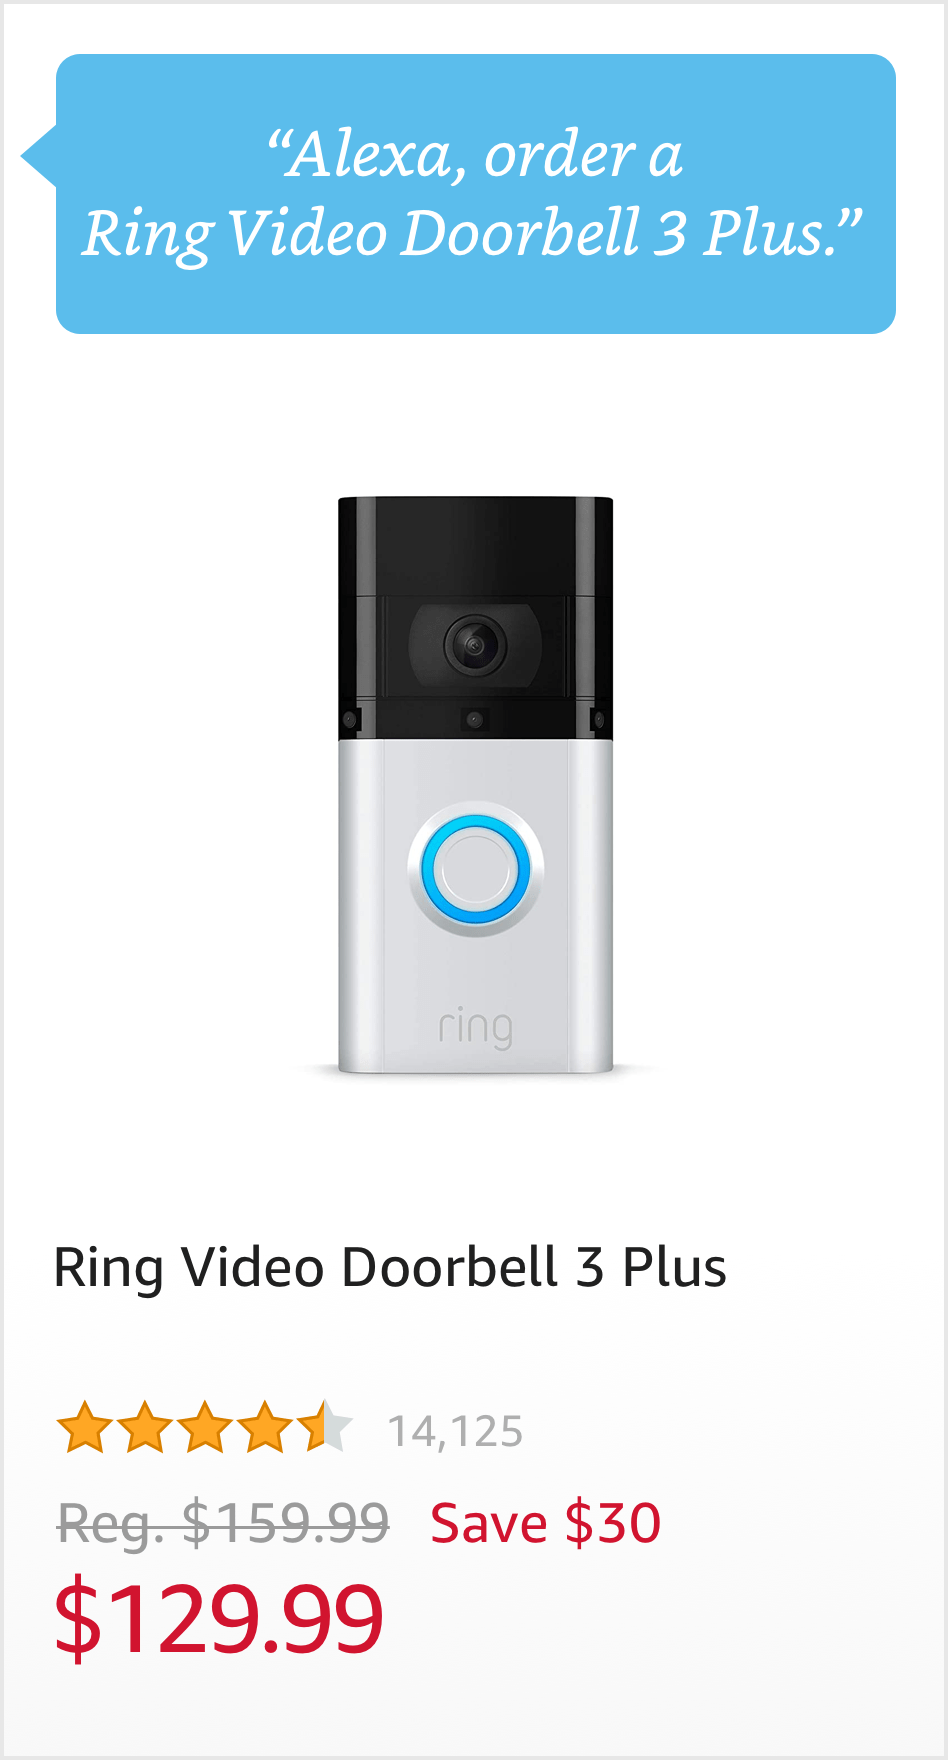 """Order a Ring Video Doorbell 3 Plus."" $129.99"